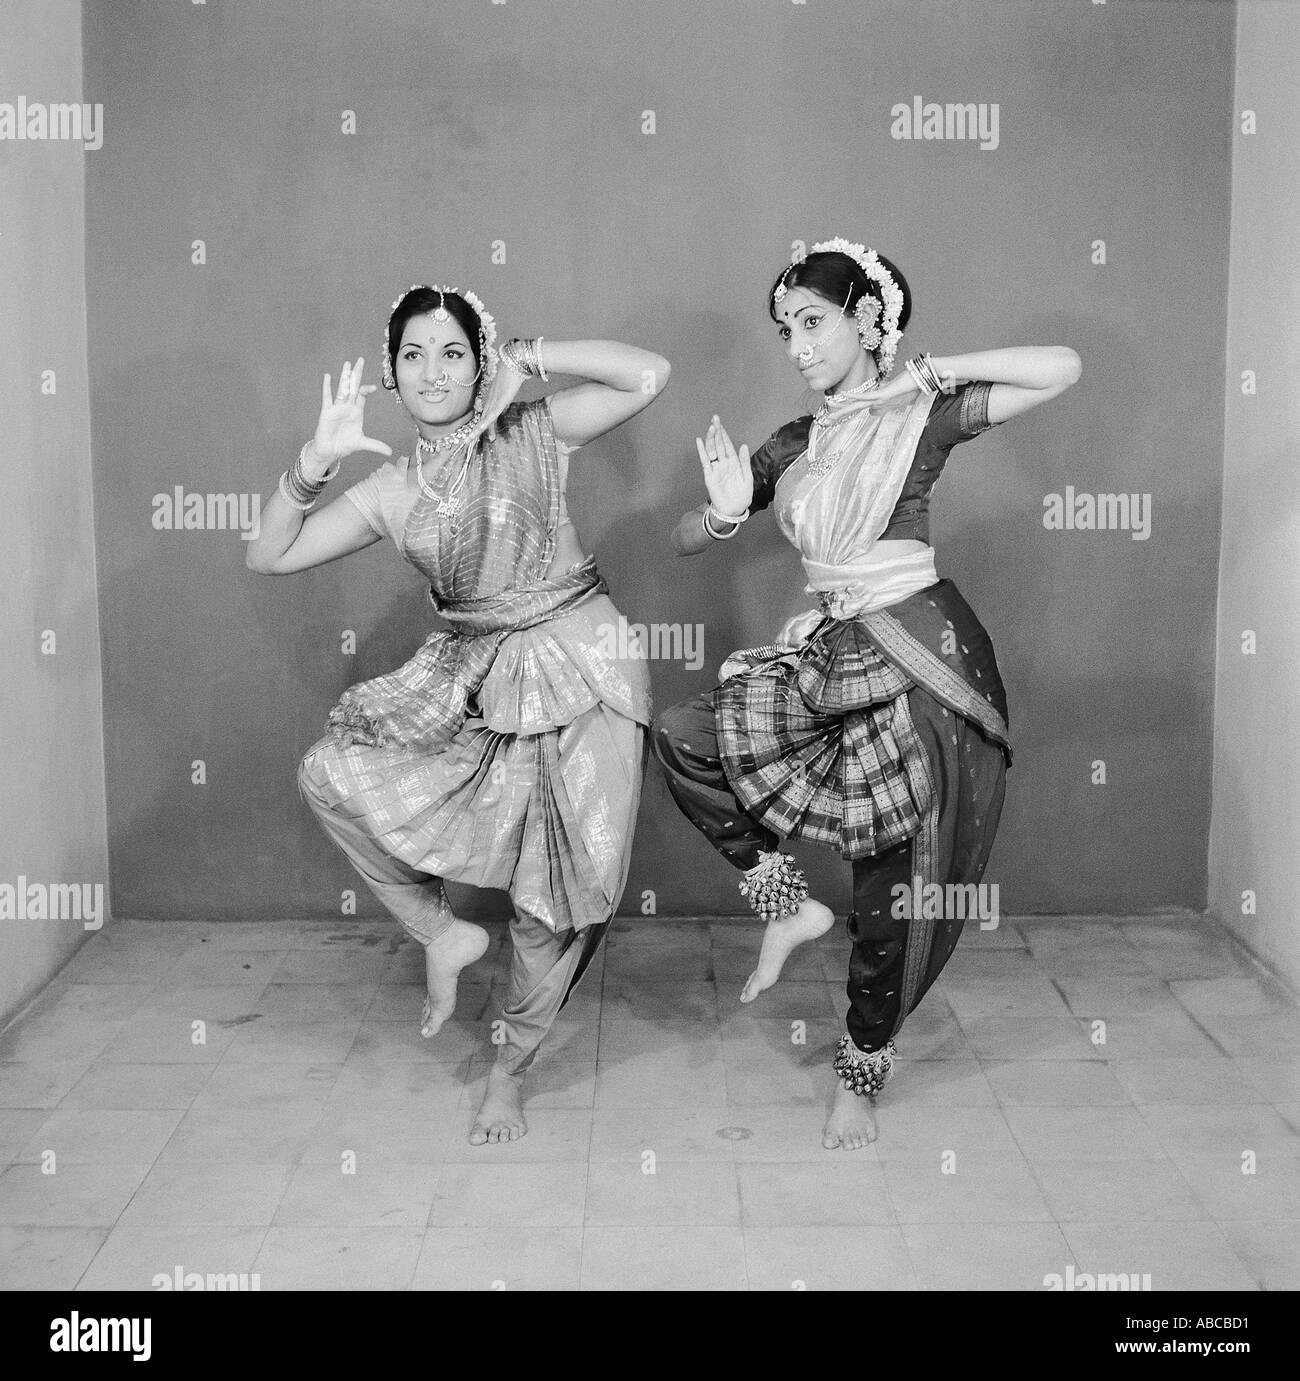 Indian Classical Dance Black And White Stock Photos Images Alamy